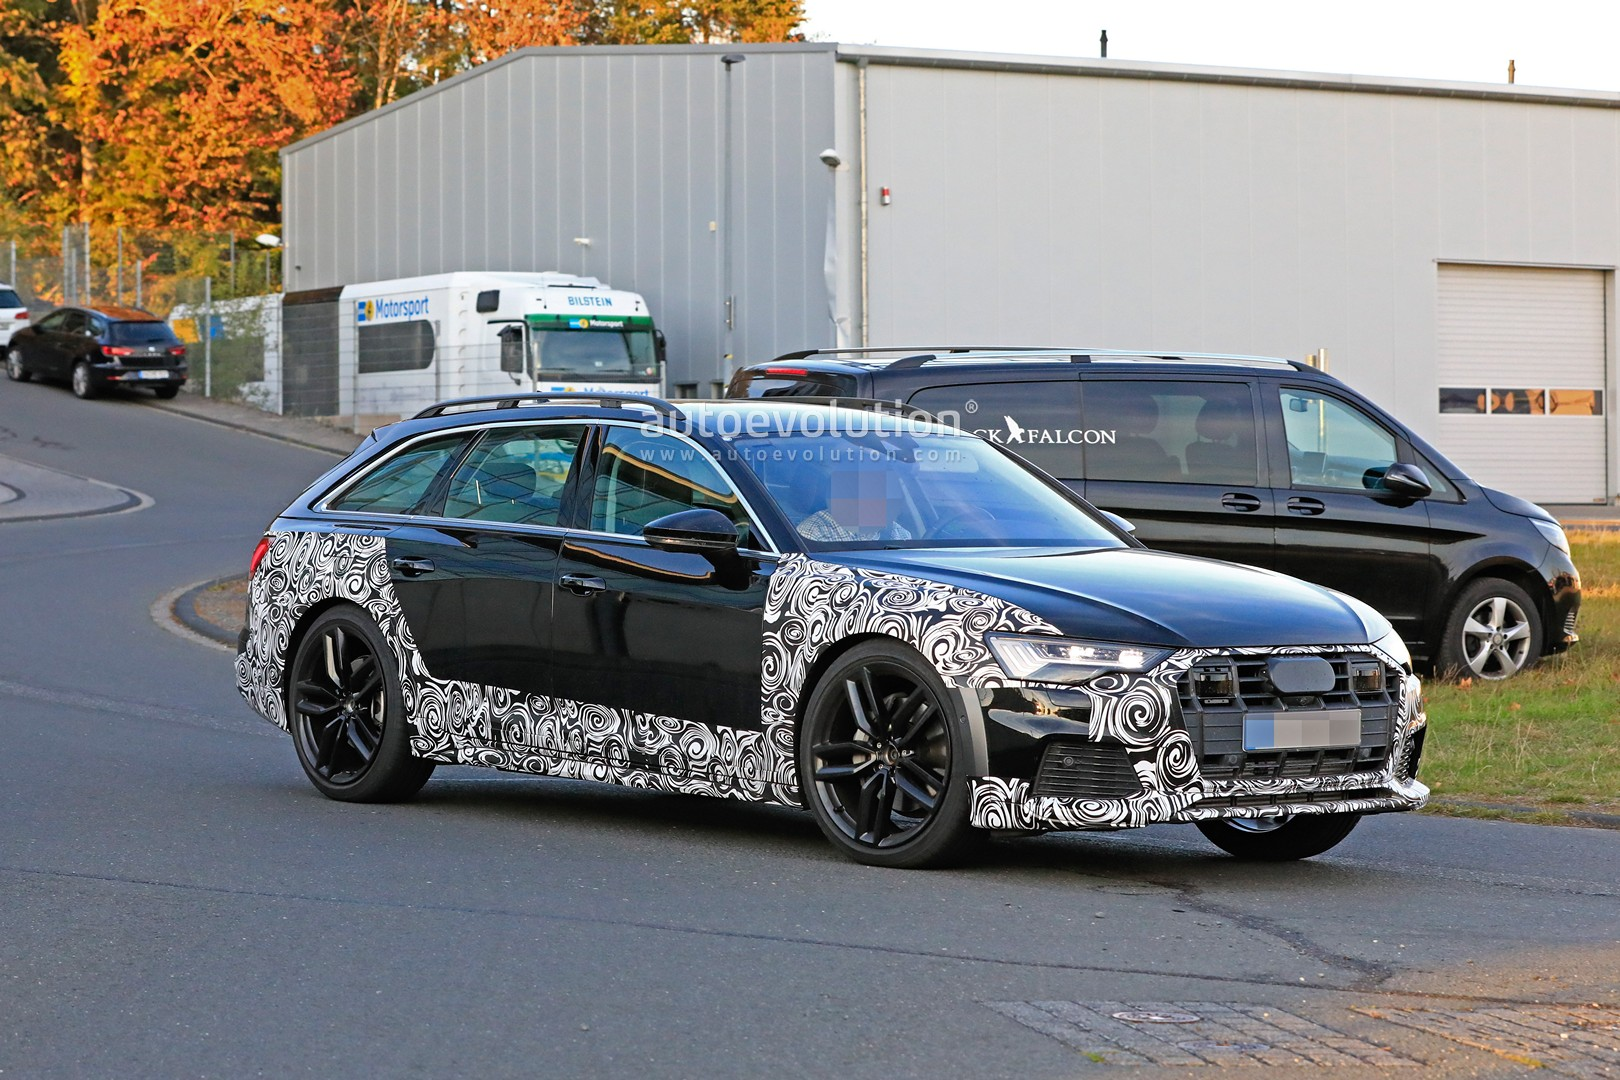 2017 - [Audi] A6 Berline & Avant [C8] - Page 10 2020-audi-a6-allroad-quattro-spied-testing-with-mild-off-road-body-kit-129228_1